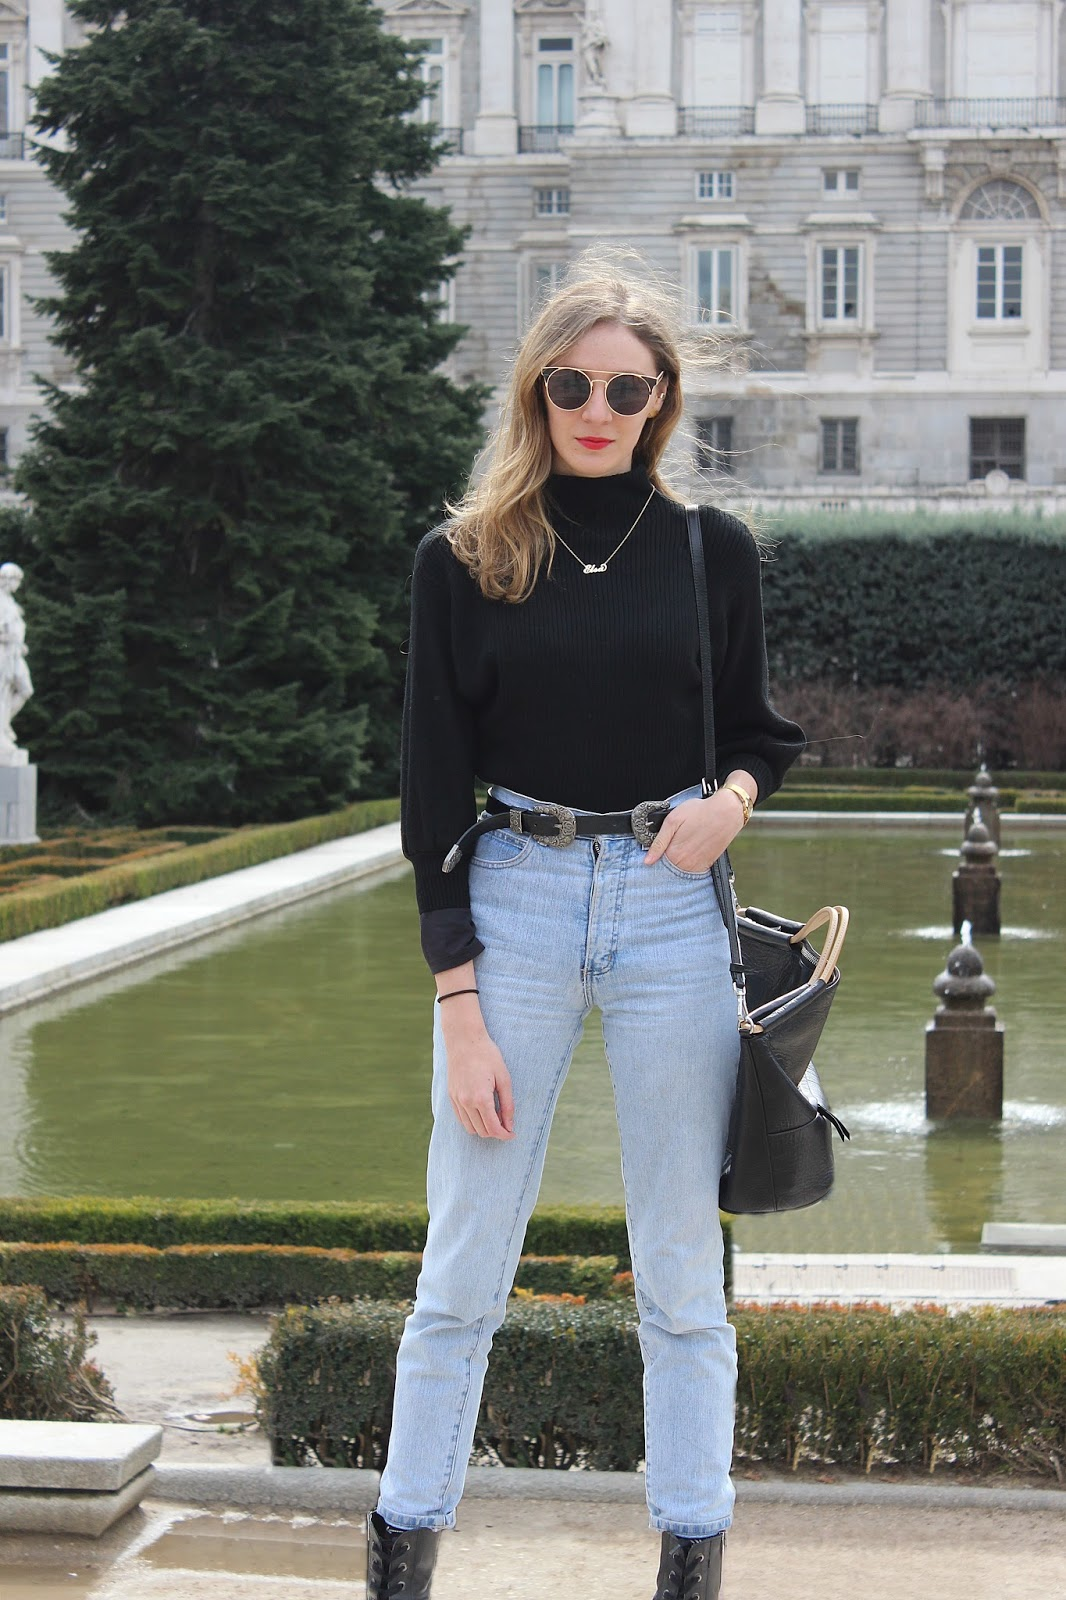 street-style-mom-jeans-militar-guess-boots-tblack-turtle-neck-zaful